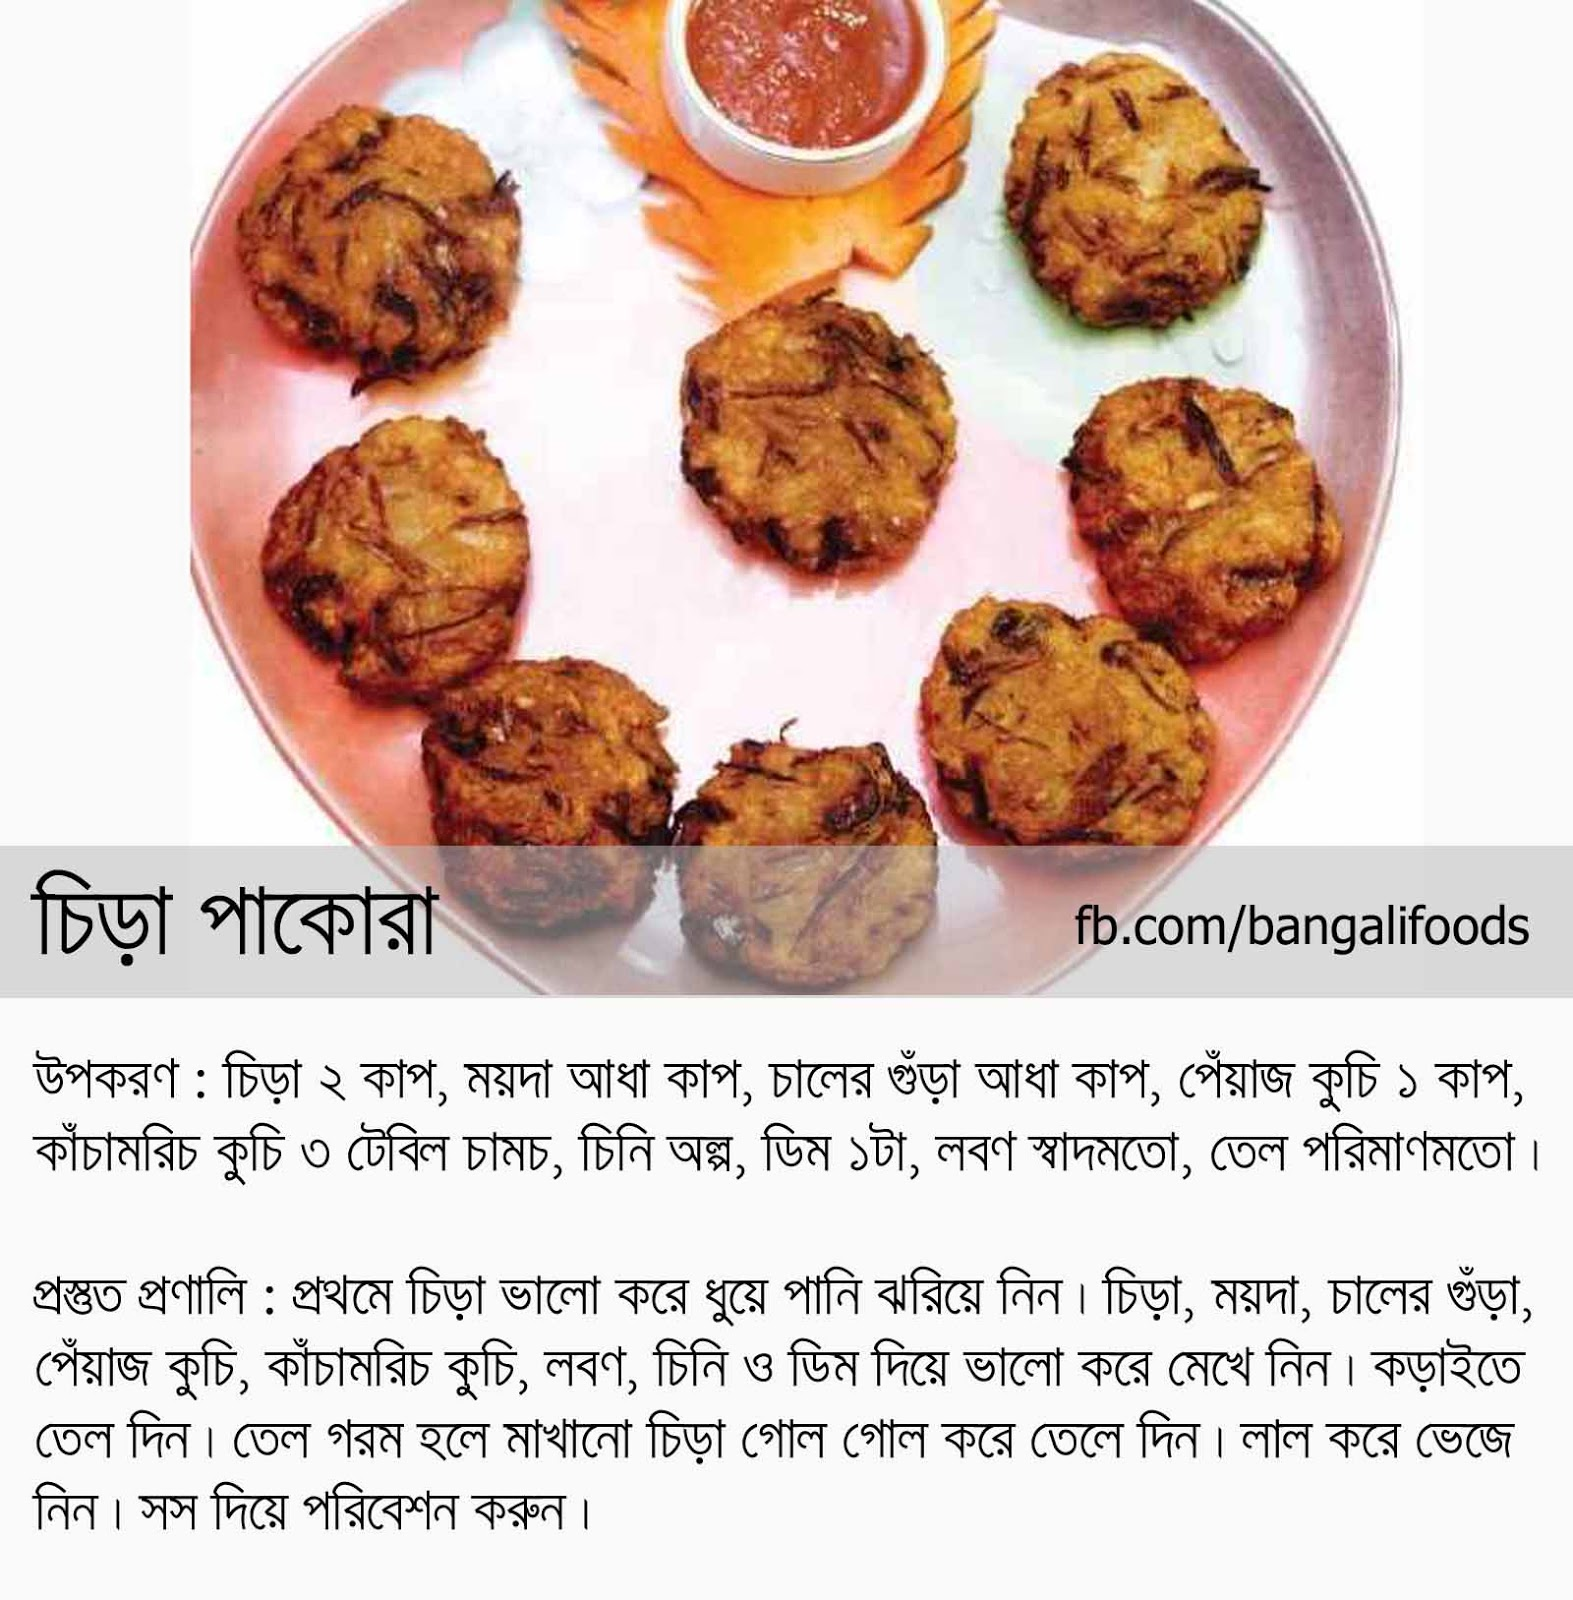 Chicken pakora recipe in bengali language best chicken recipes chicken pakora recipe in bengali language forumfinder Images